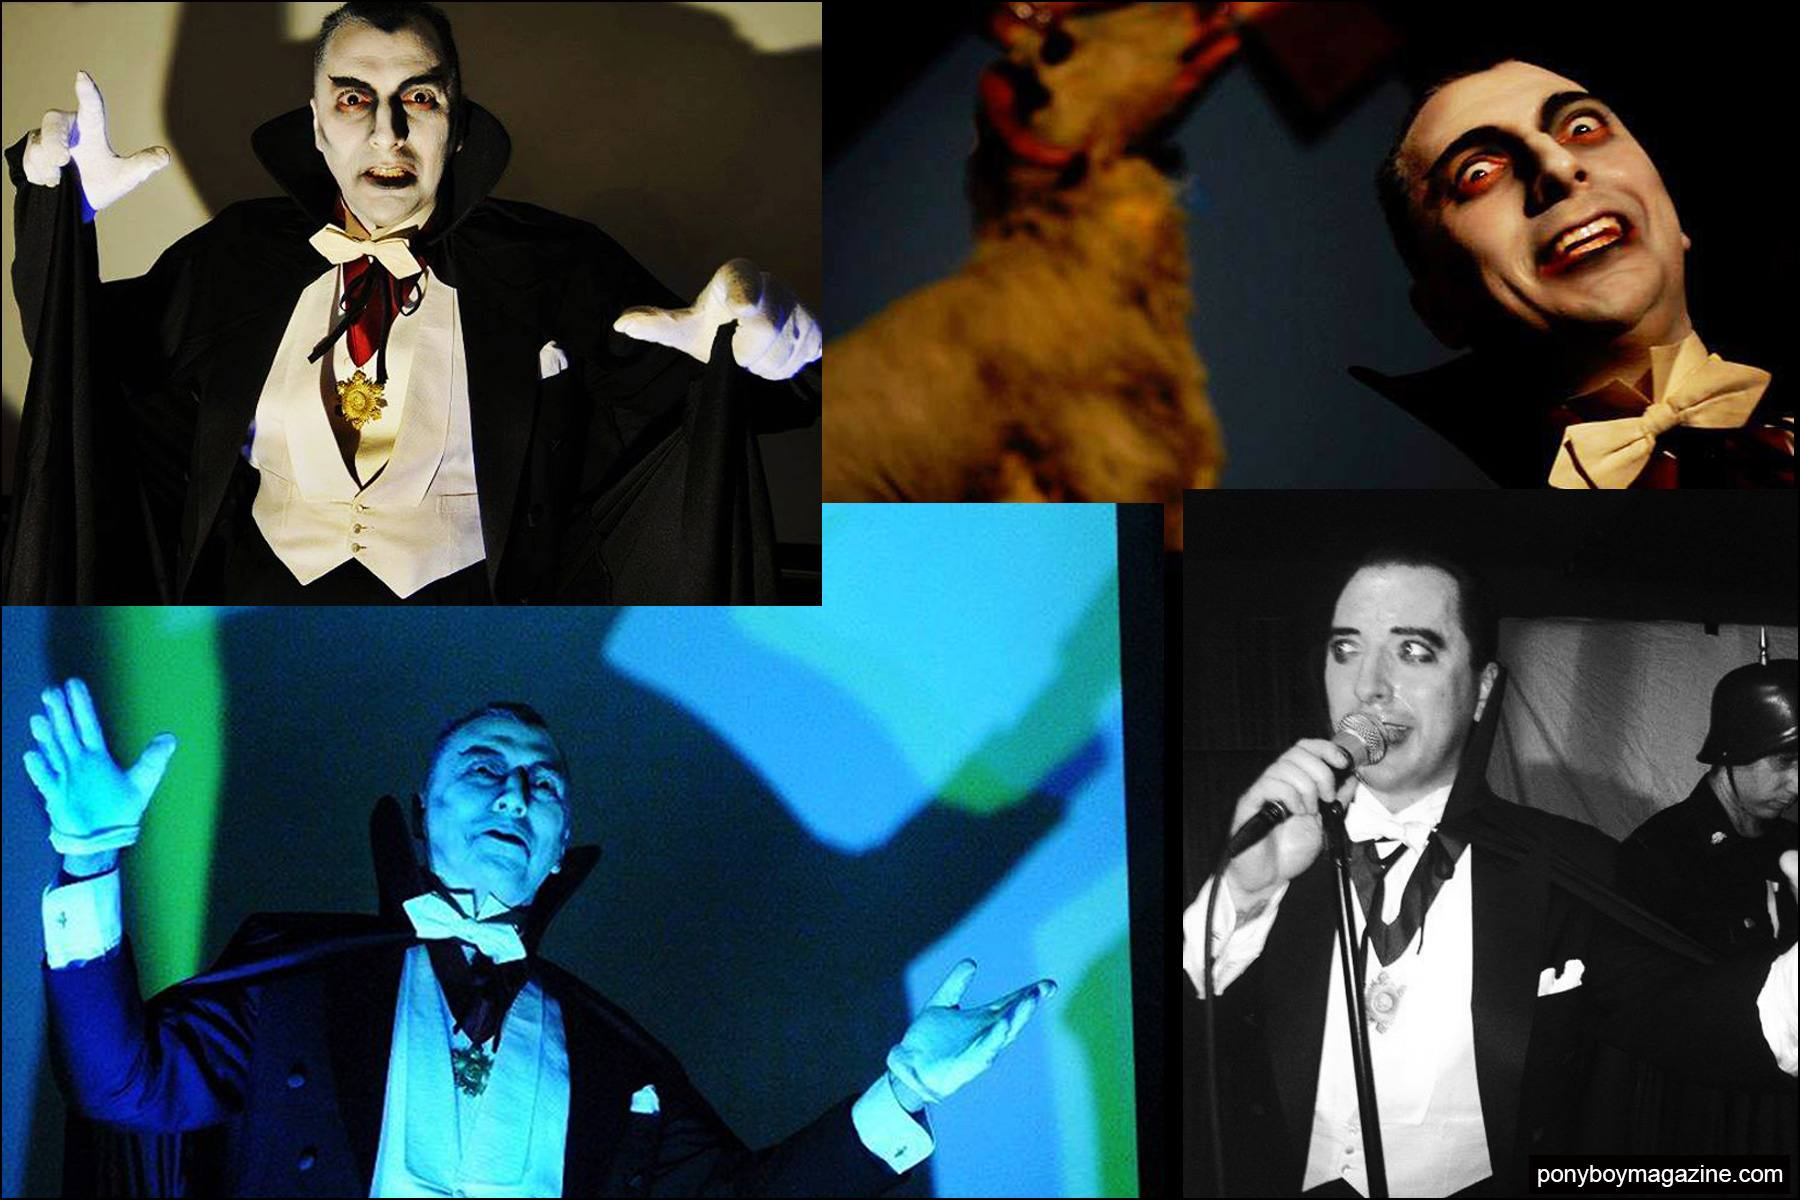 Photographs of Mike Decay dressed as Moloch for the Phantom Creep Theater. Pony boy magazine NY.